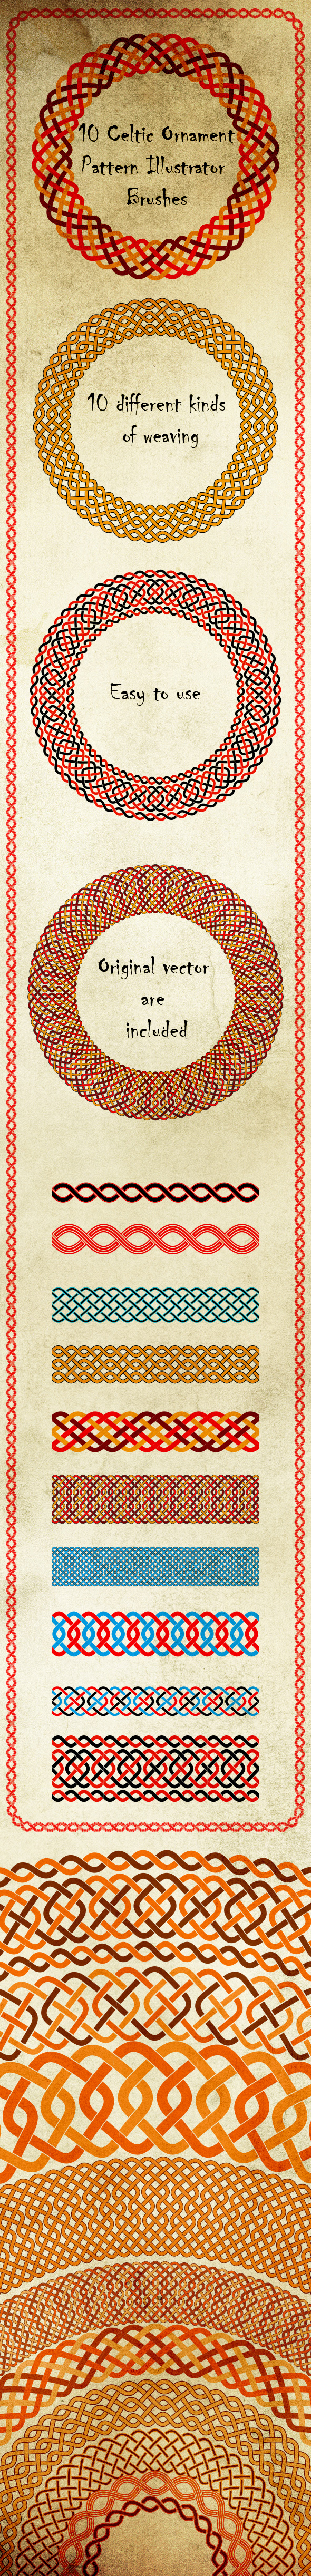 GraphicRiver Celtic Knot Ornament Brushes Weaving Motive Adobe Illustrator Brushes 20955540